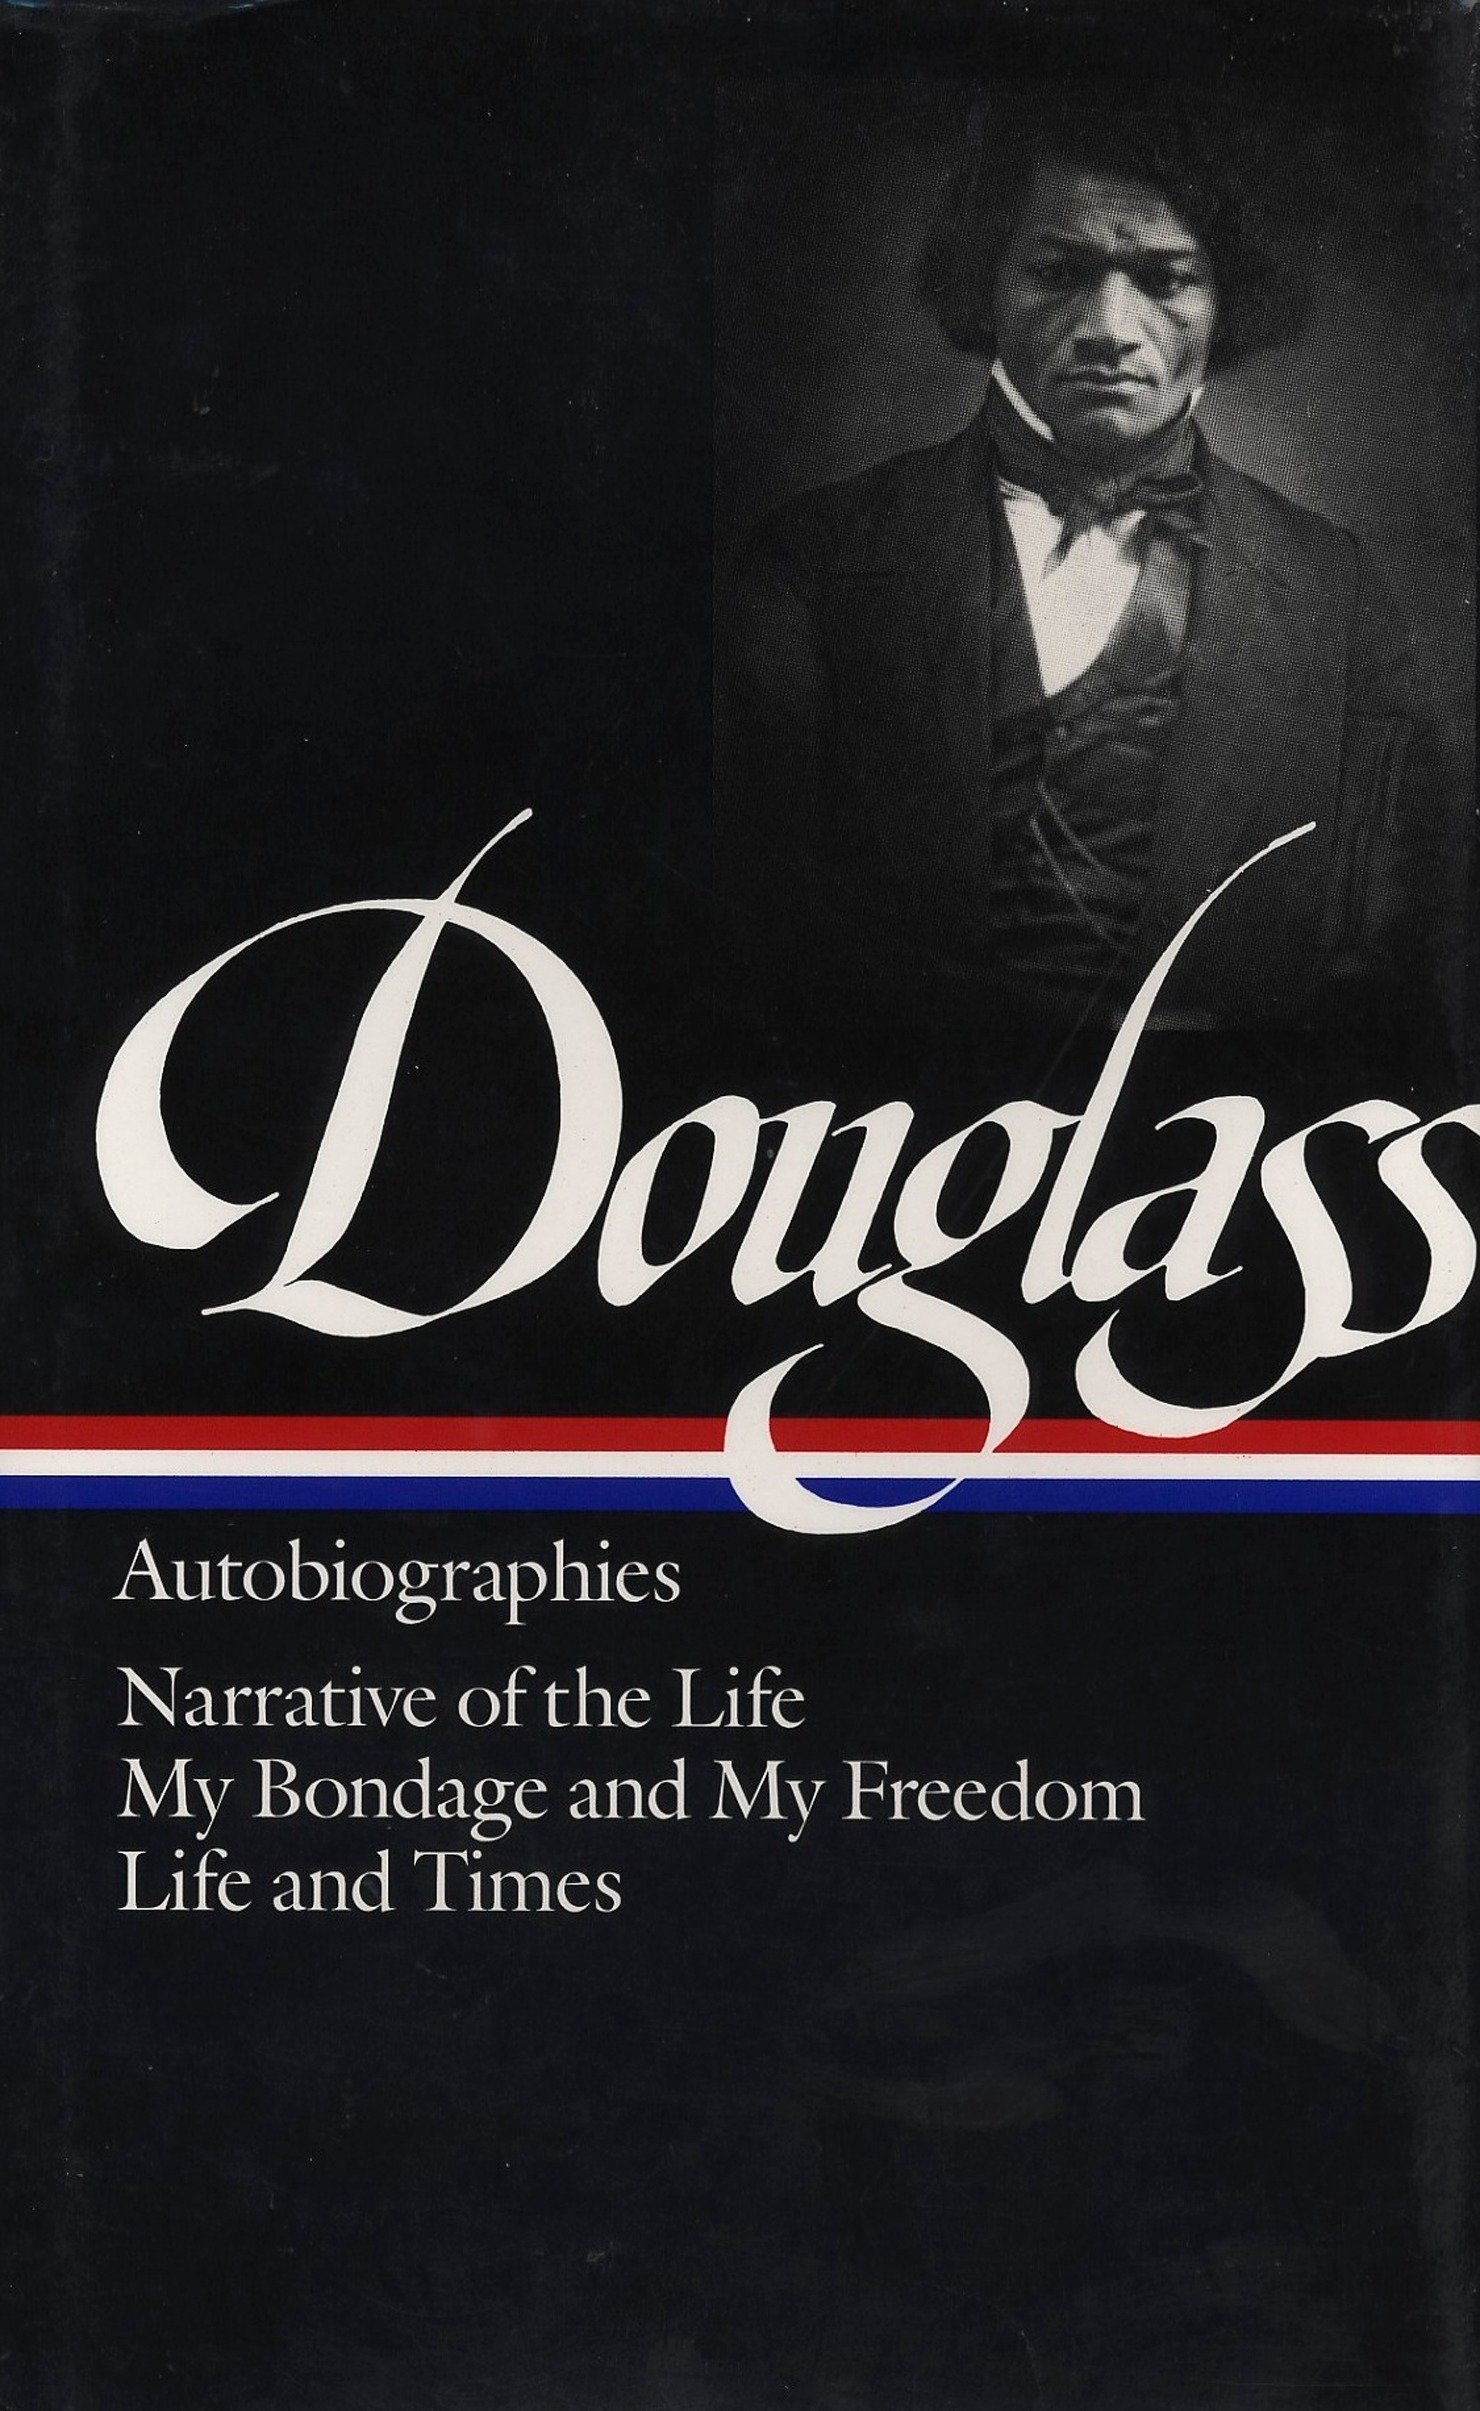 Download Frederick Douglass: Autobiographies (LOA #68): Narrative Of The Life / My Bondage And My Freedom / Life And Times 